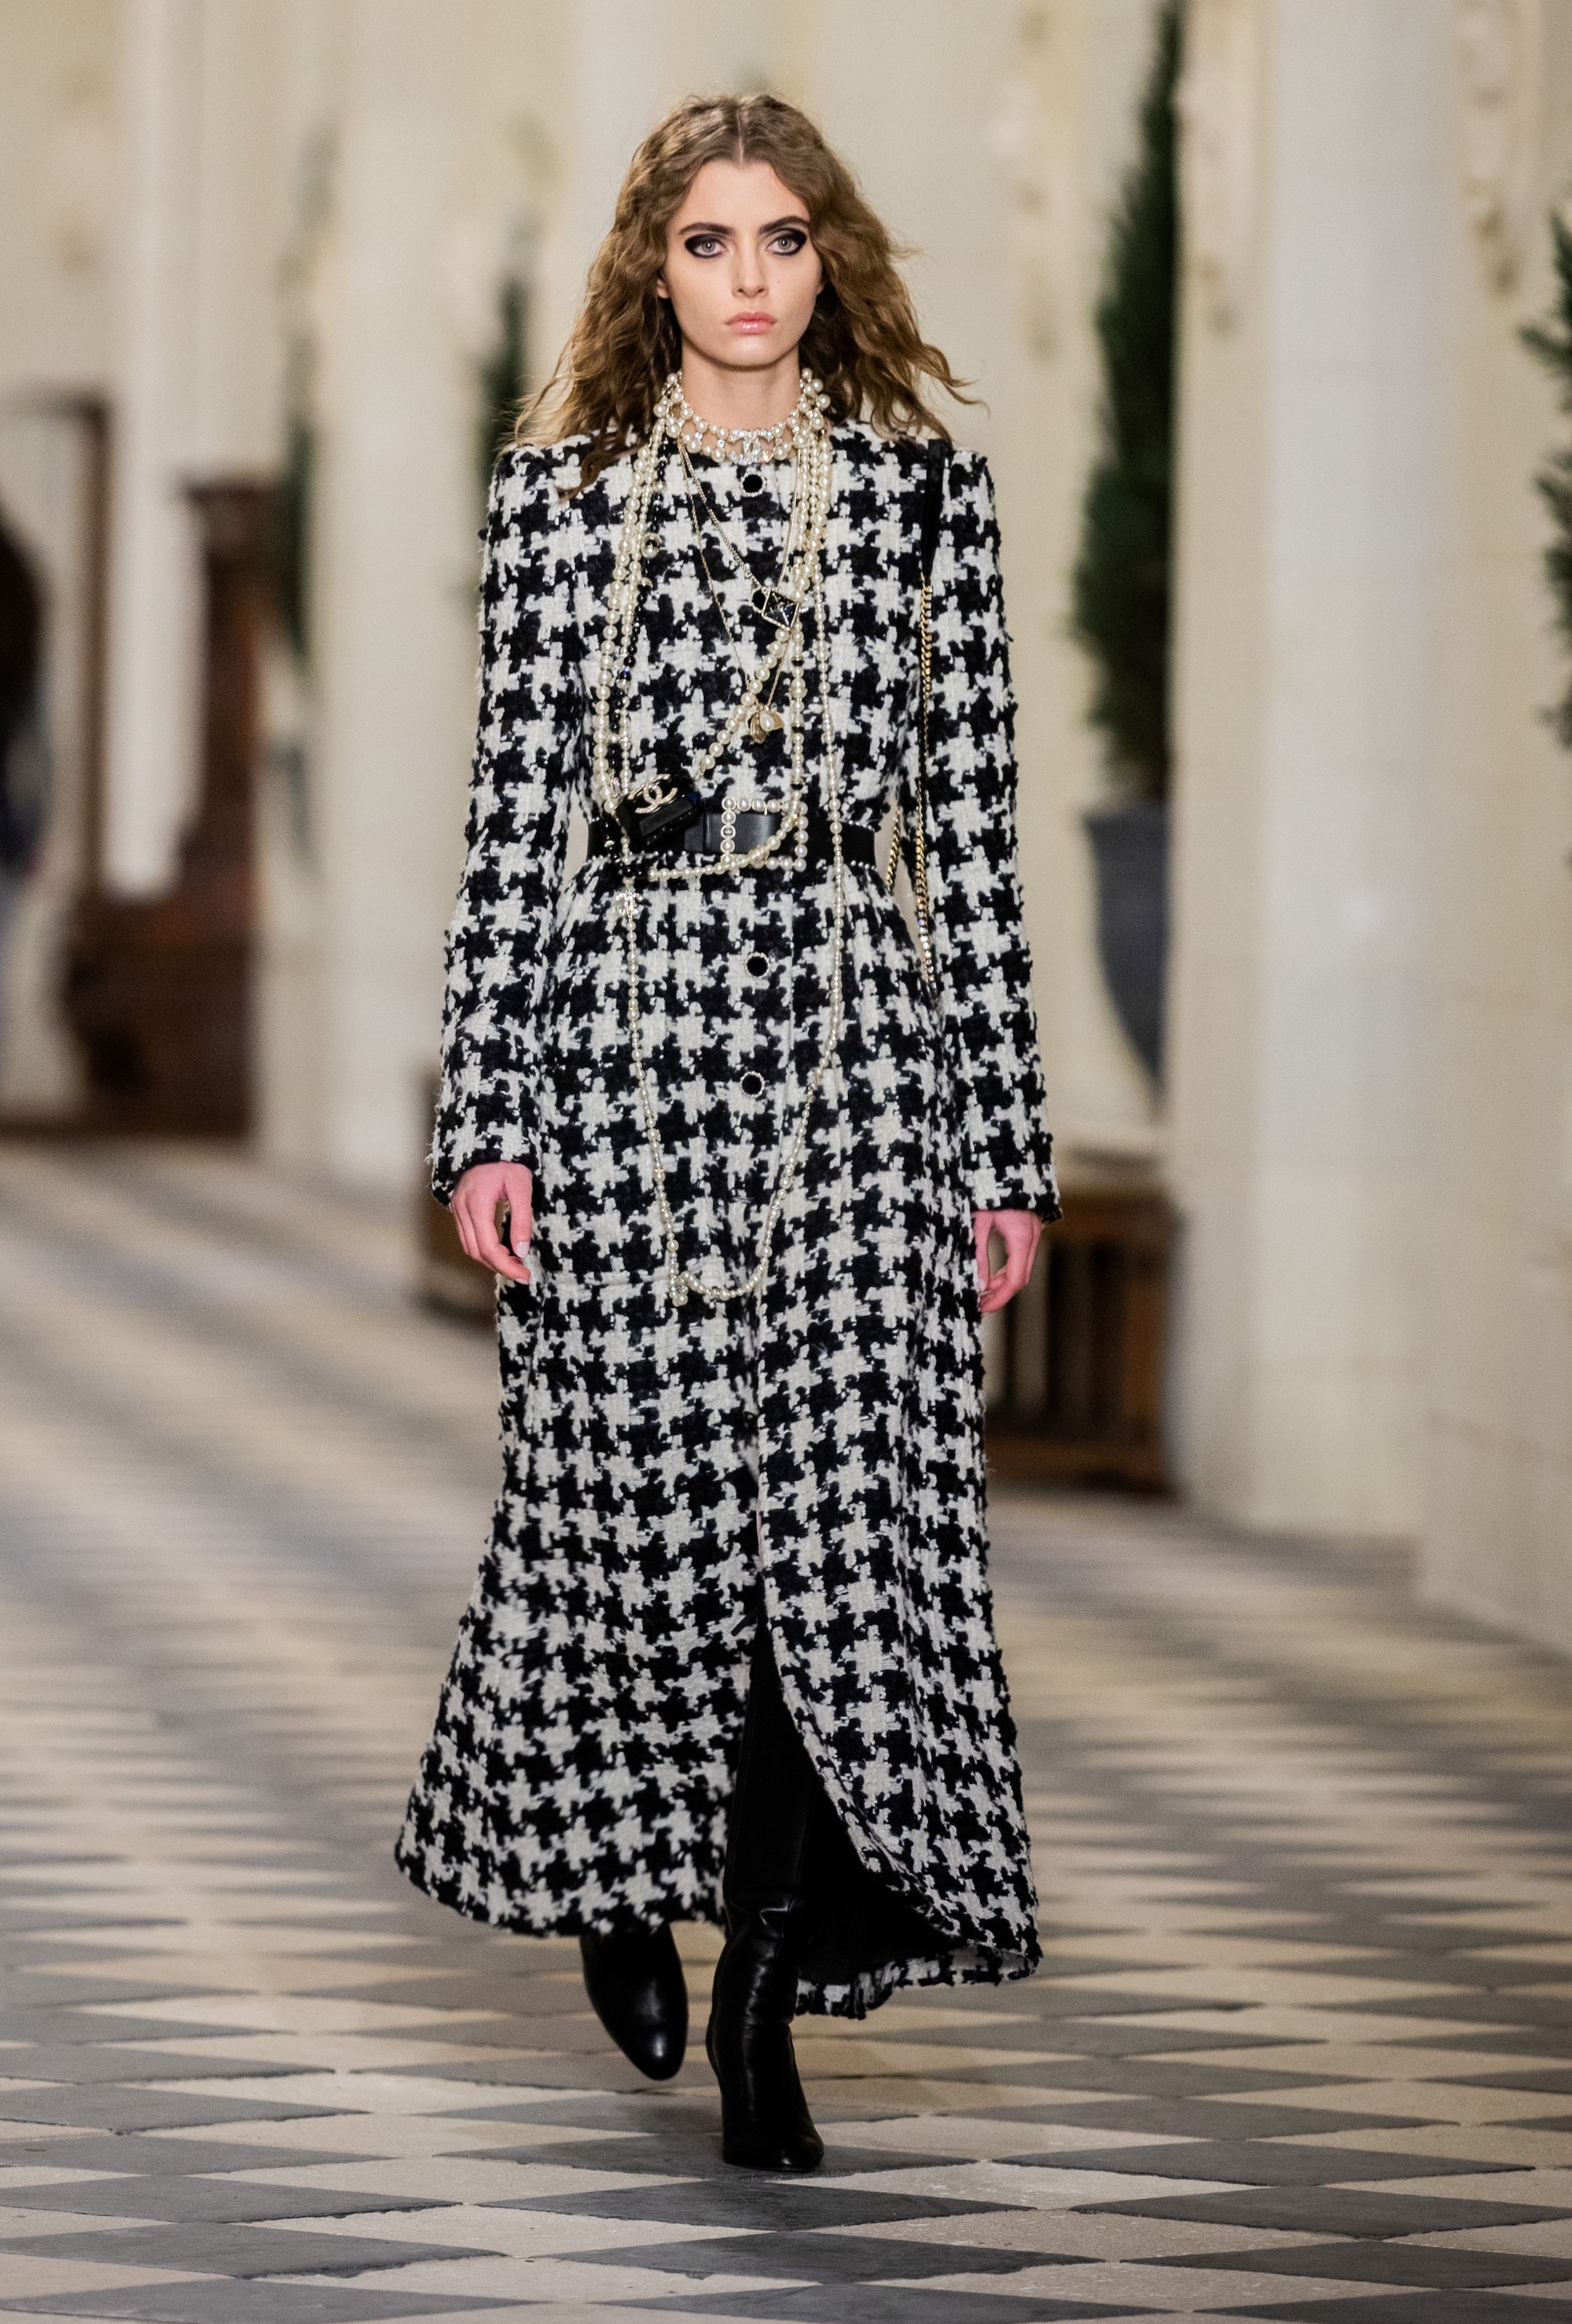 Chanel Métiers D'Art houndstooth dress